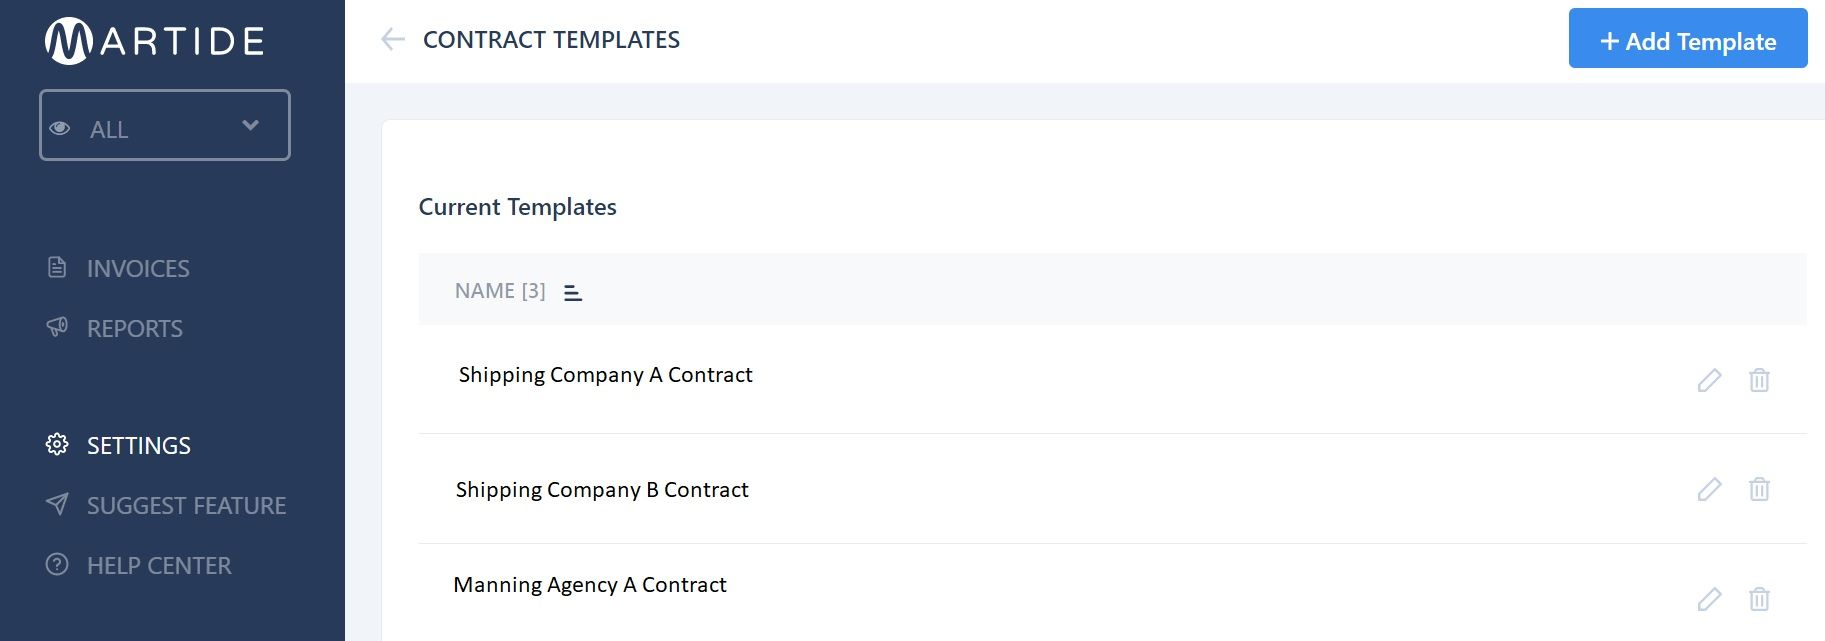 screenshot of Martide website showing the main Contract Templates page